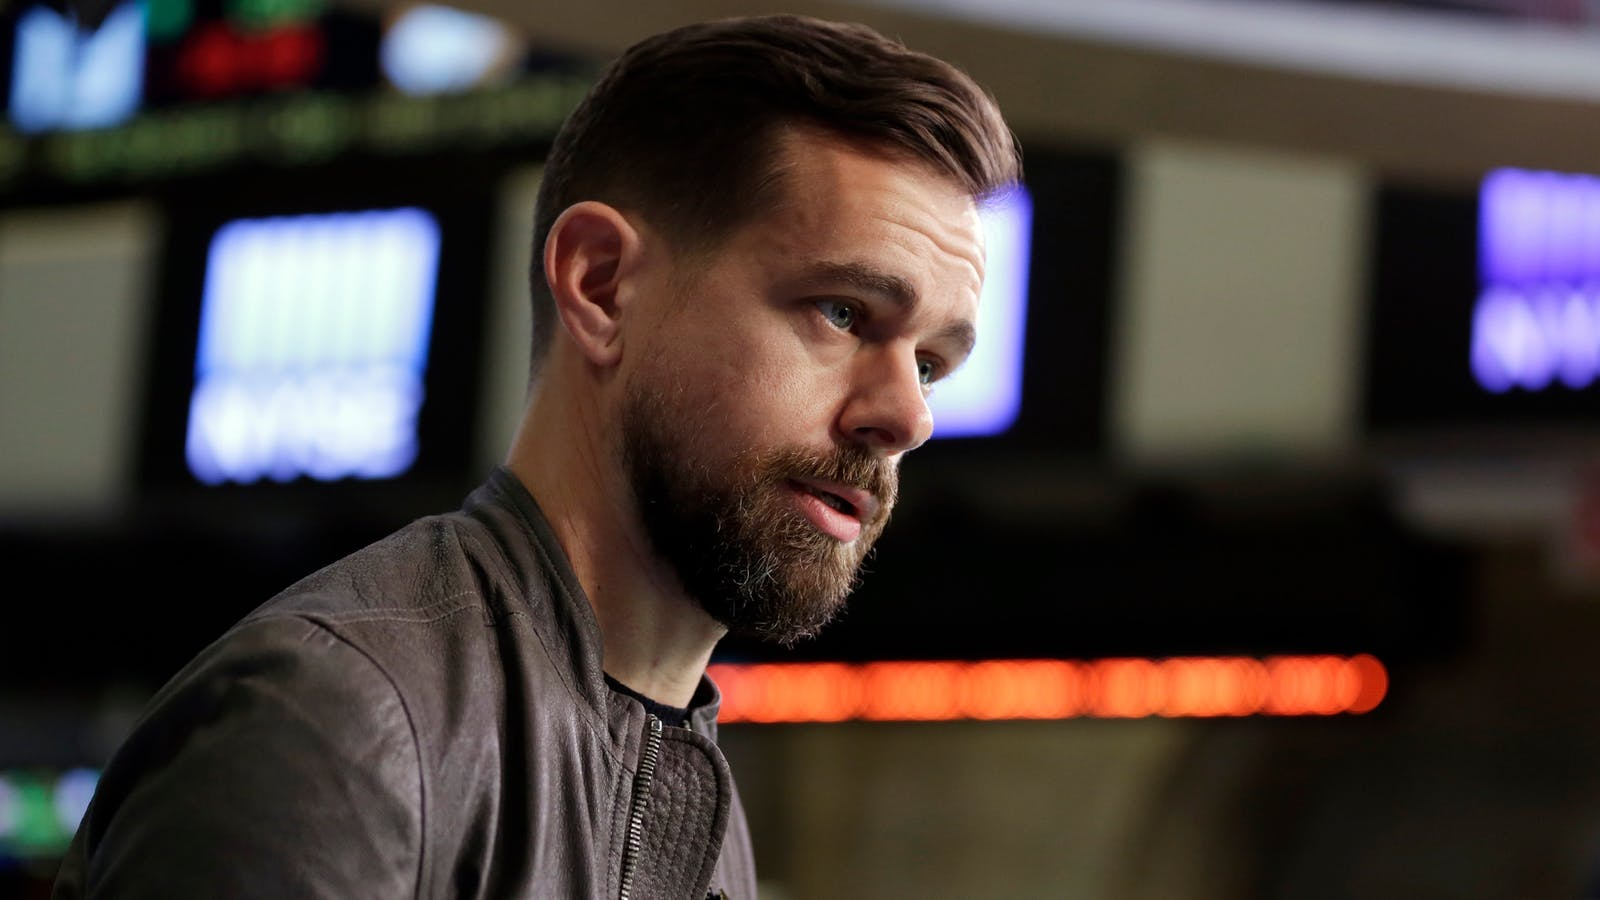 Twitter CEO Jack Dorsey. Photo by AP. Screen shot of Huffington Post's Twitter profile page.